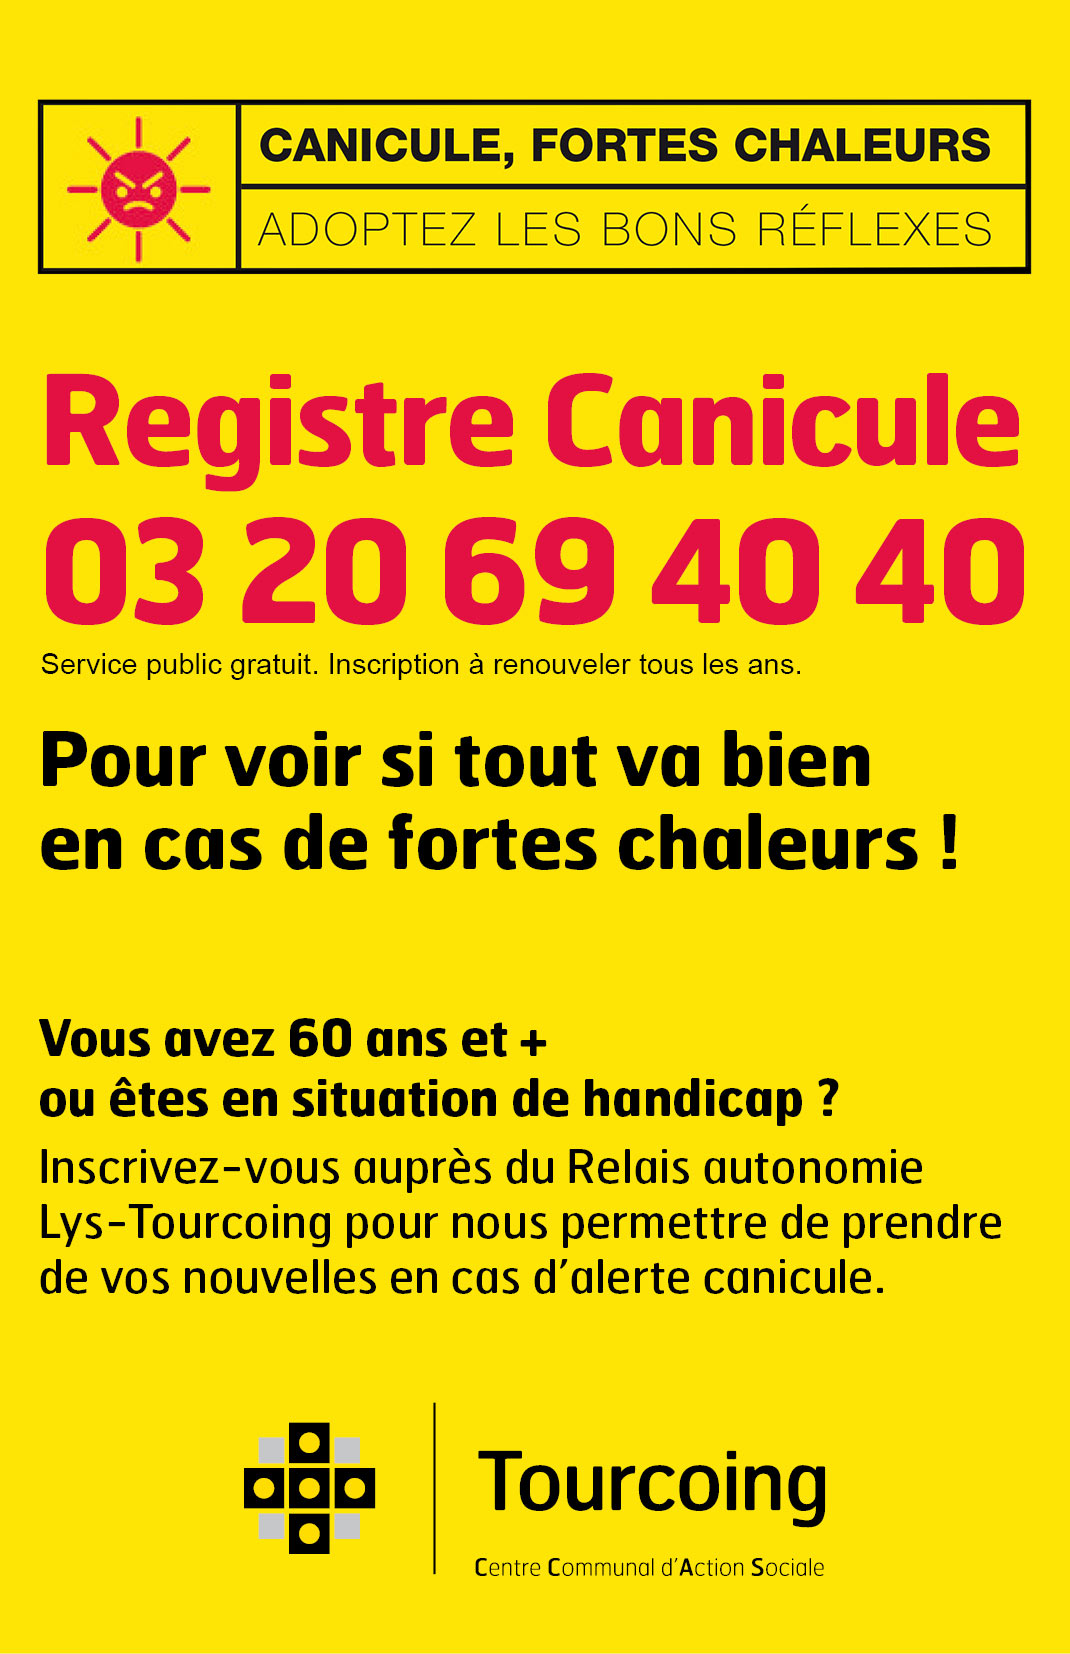 canicule 2020 inscription registre  850  550